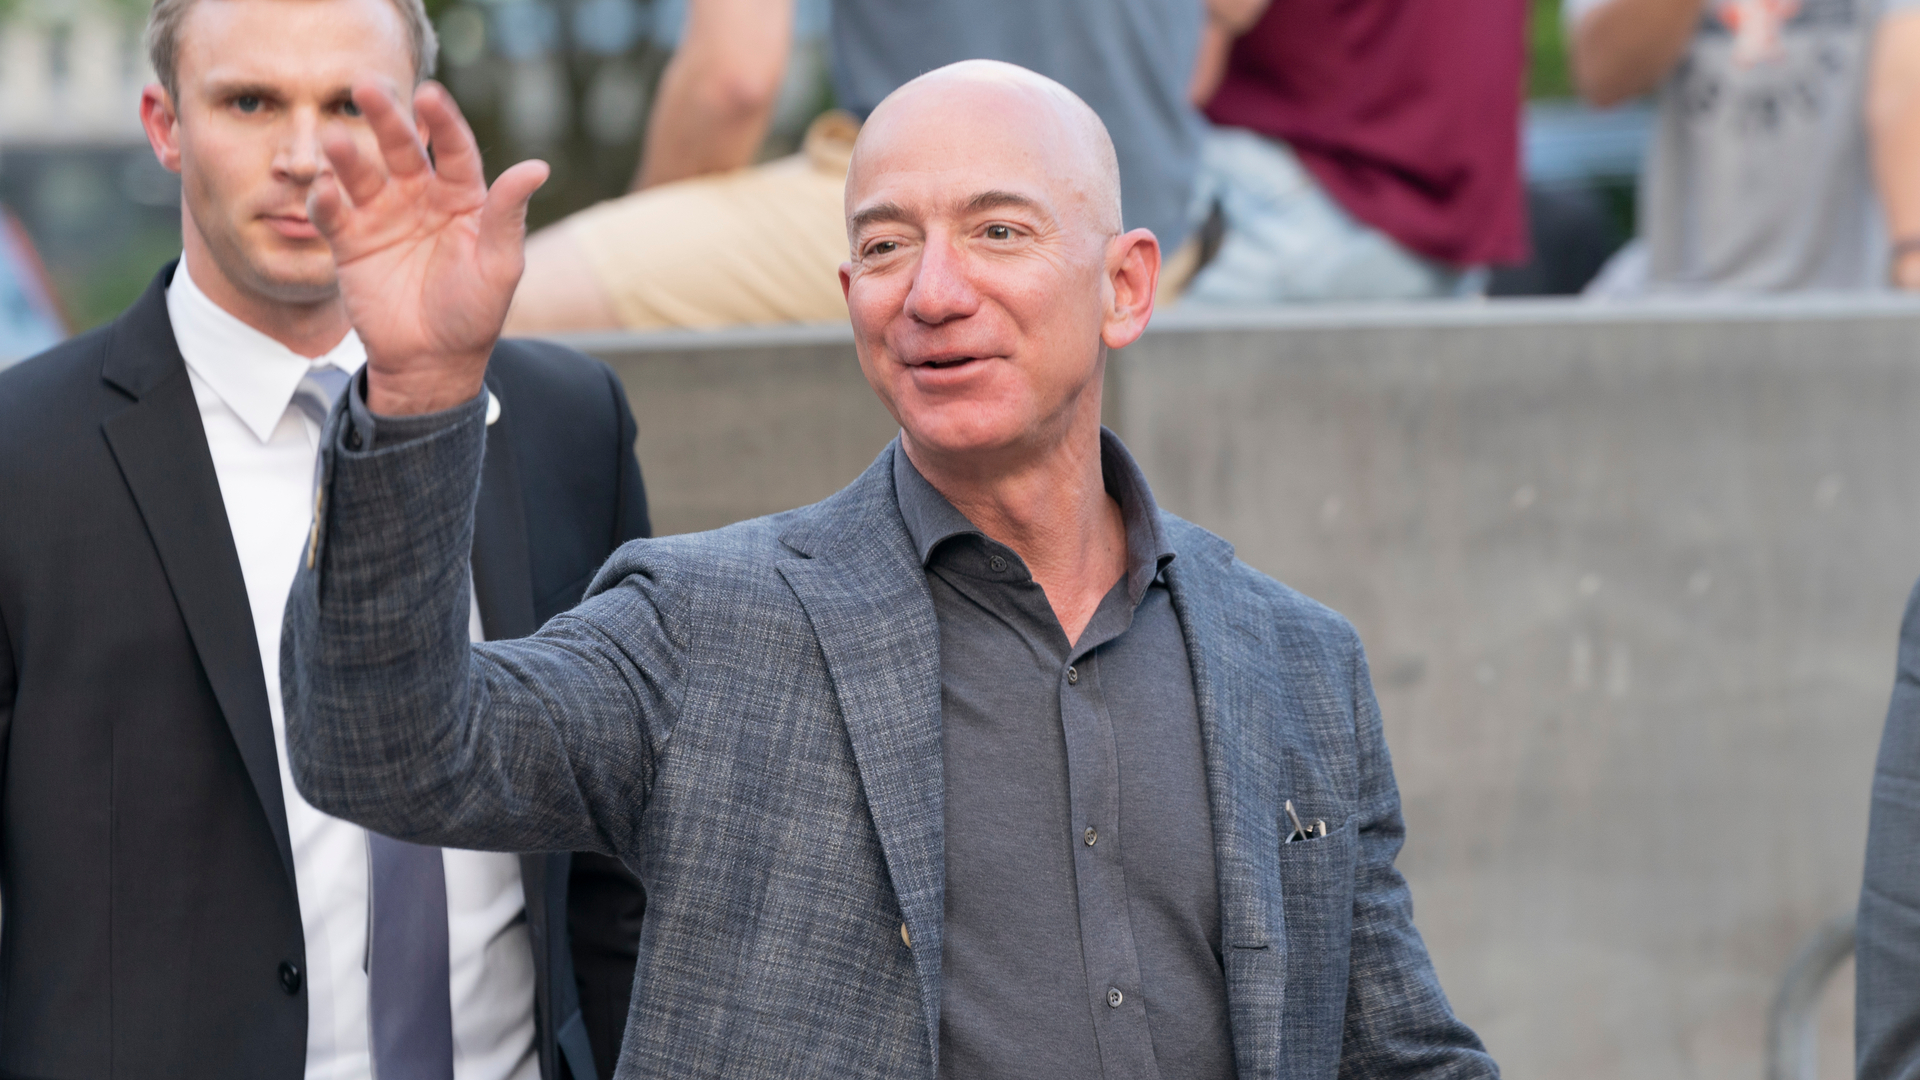 Jeff Bezos, fundador da Amazon e o homem mais rco do mundo